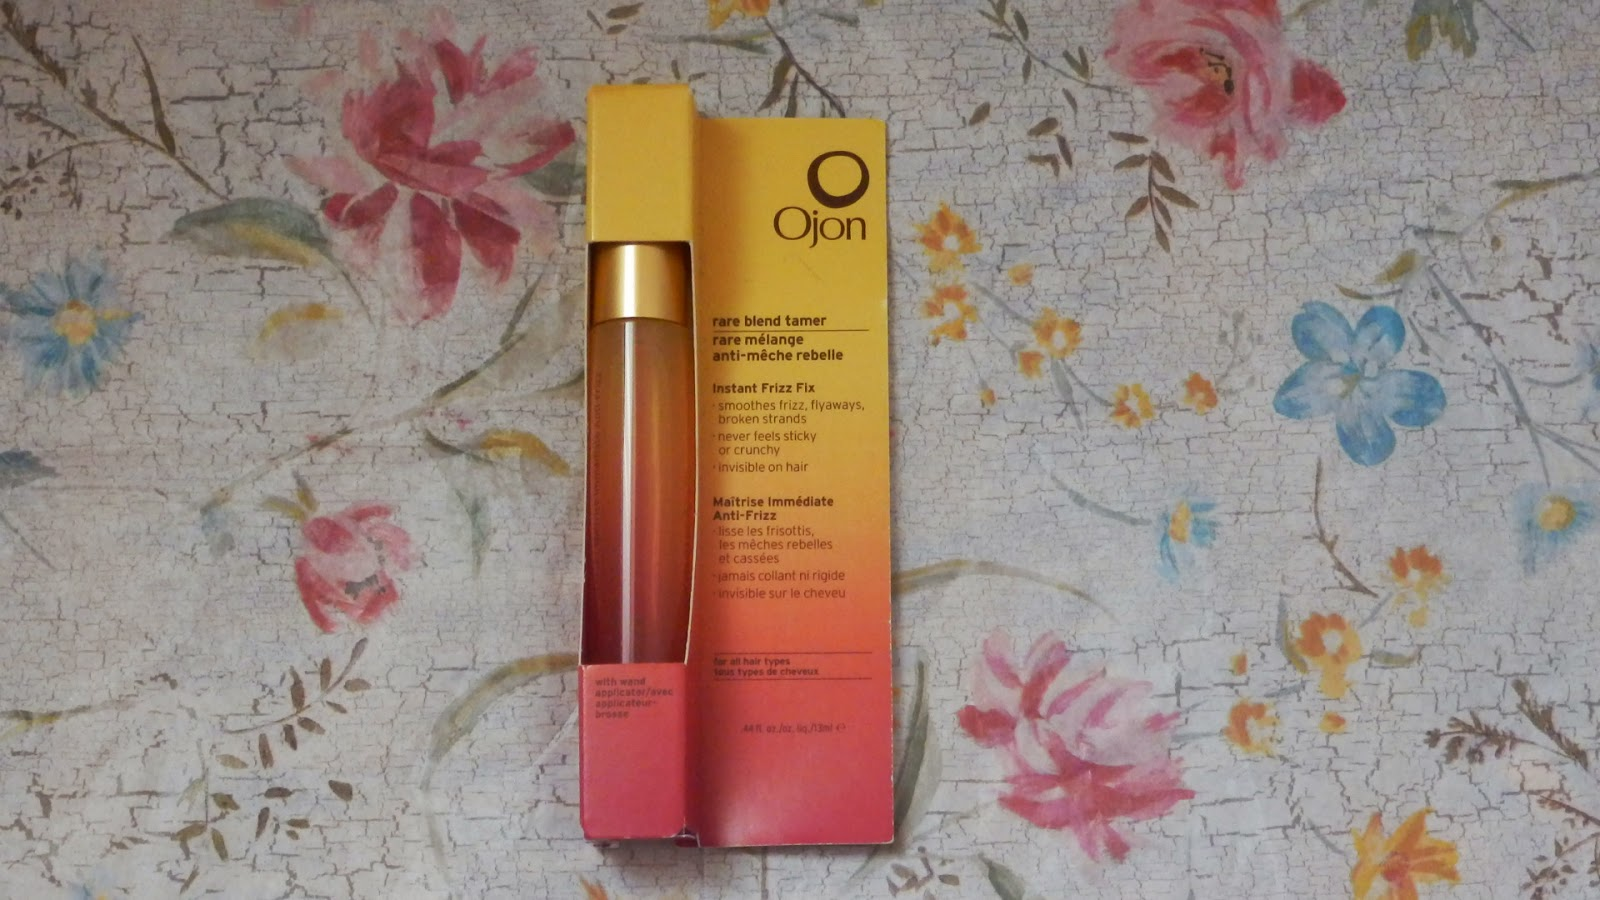 Ojon Rare Blend Tamer Wand Review